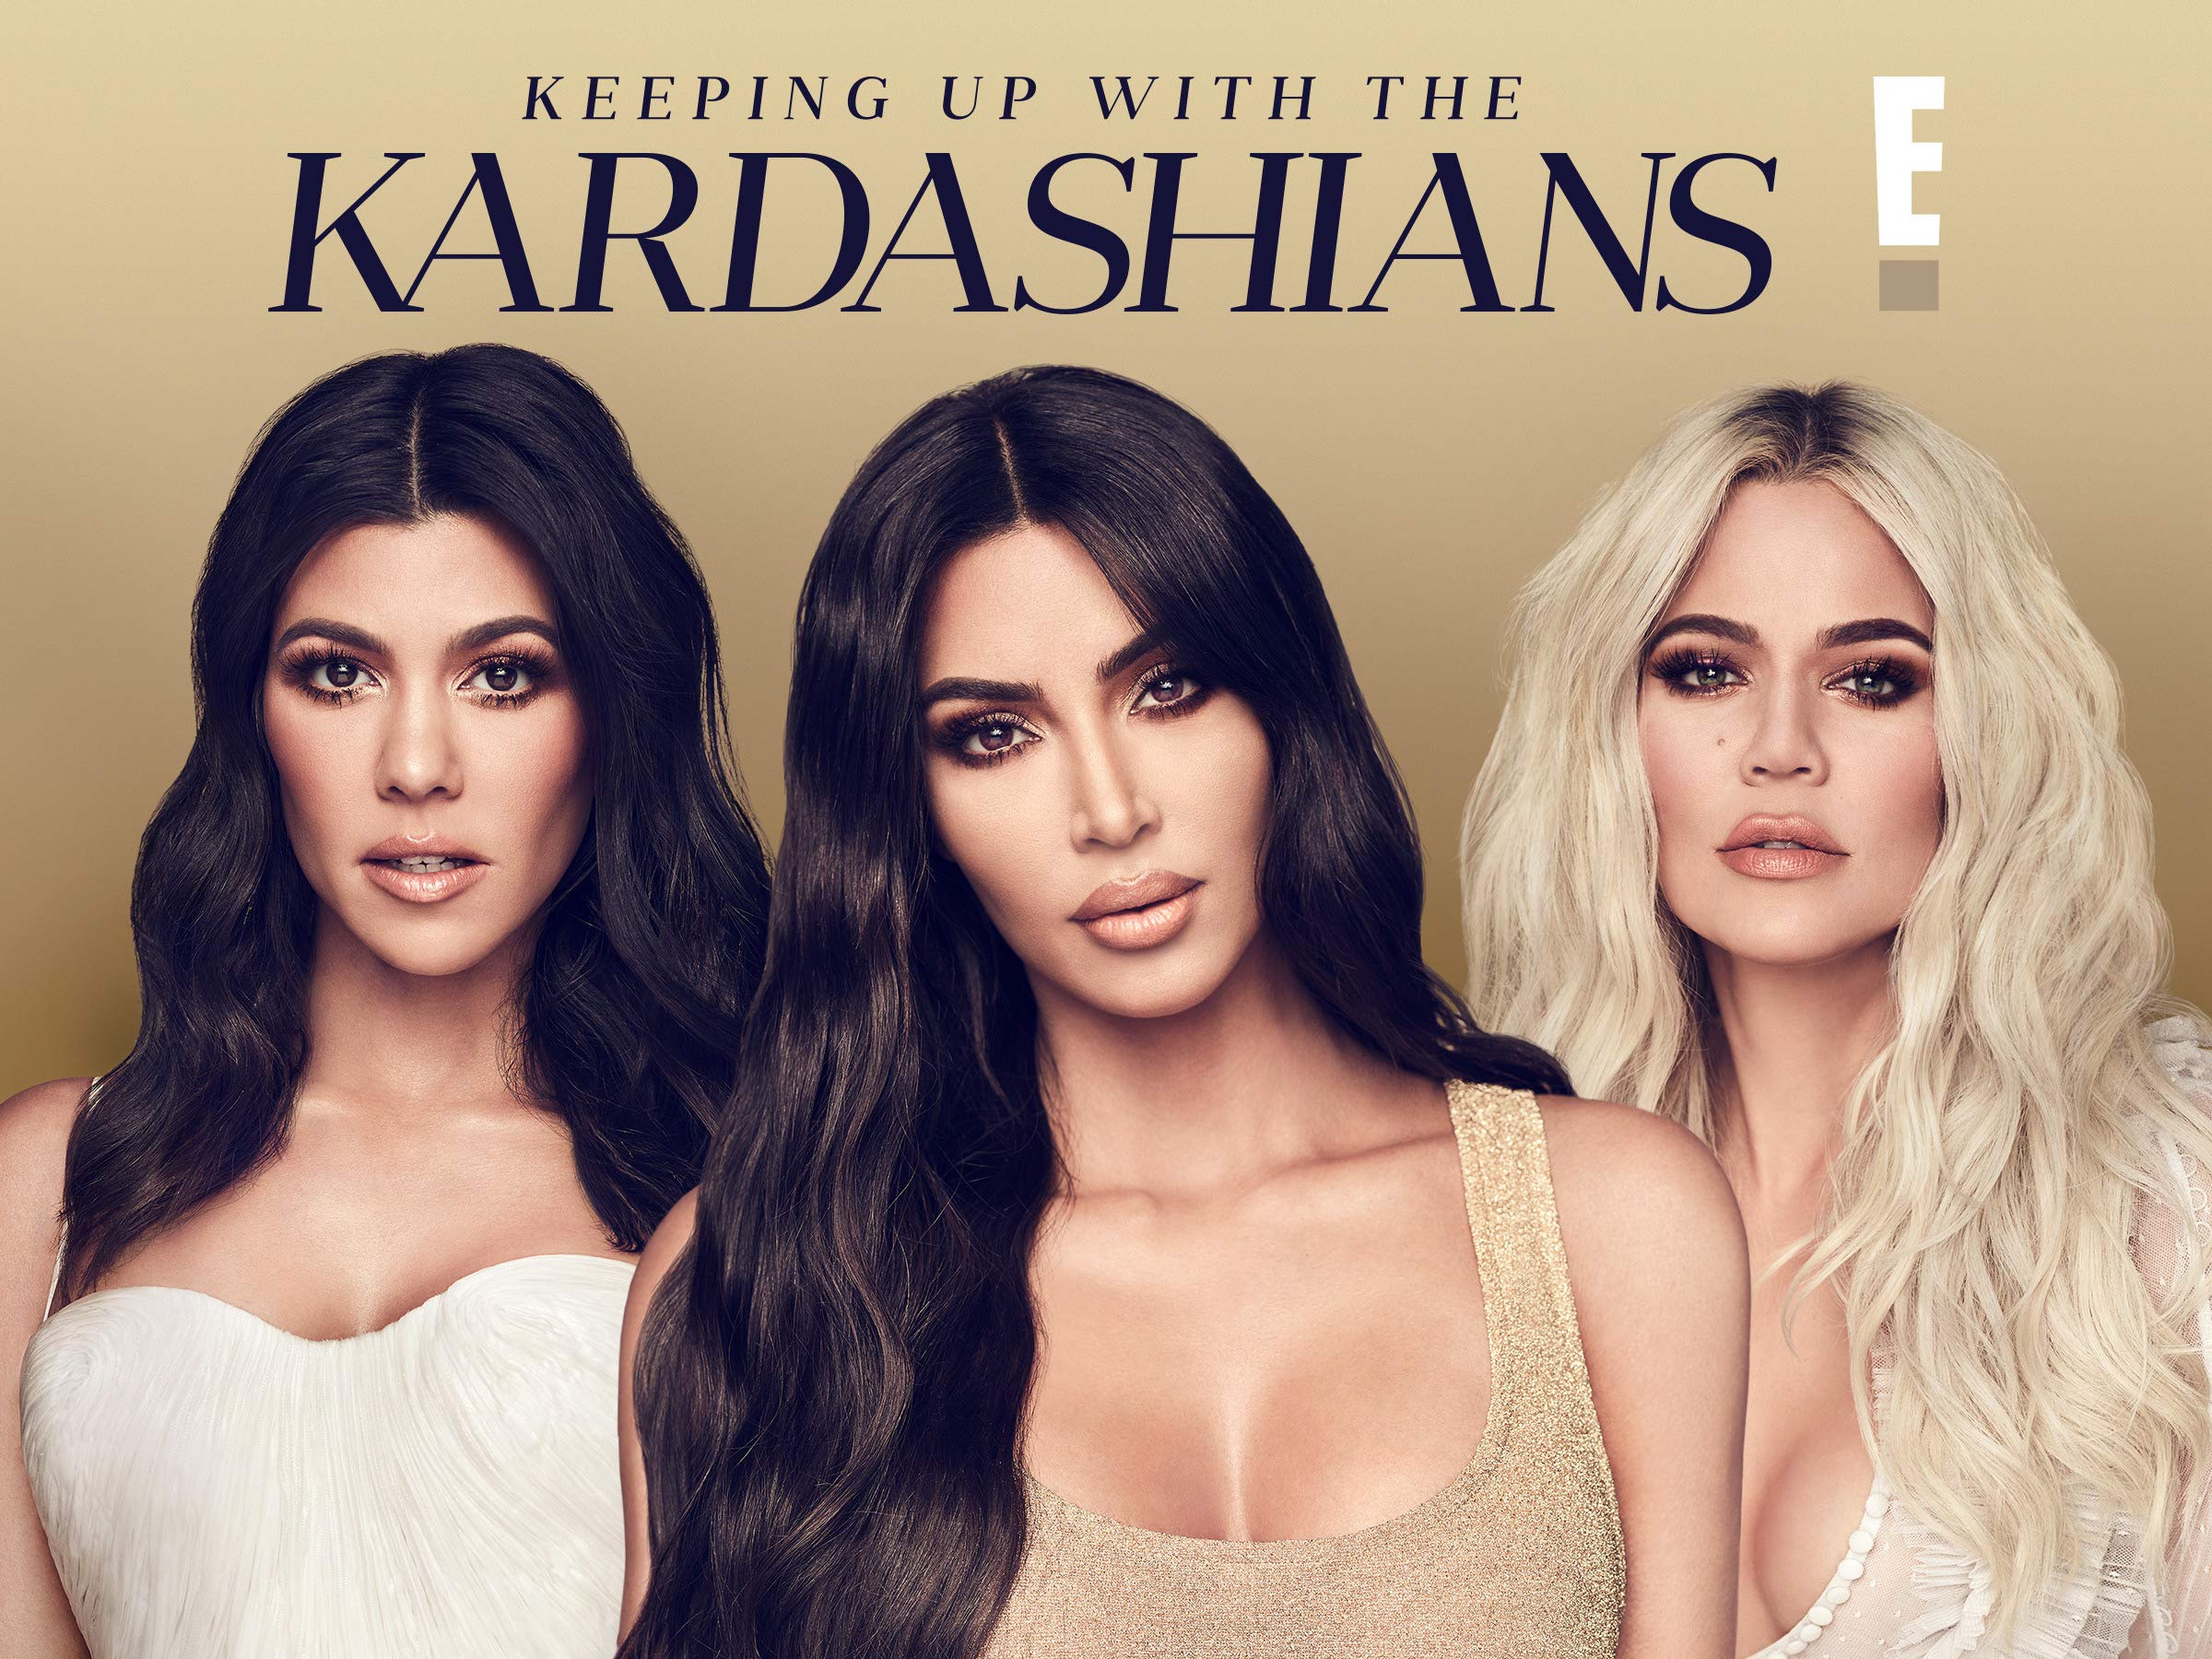 keeping up with the kardashians full episodes free season 13